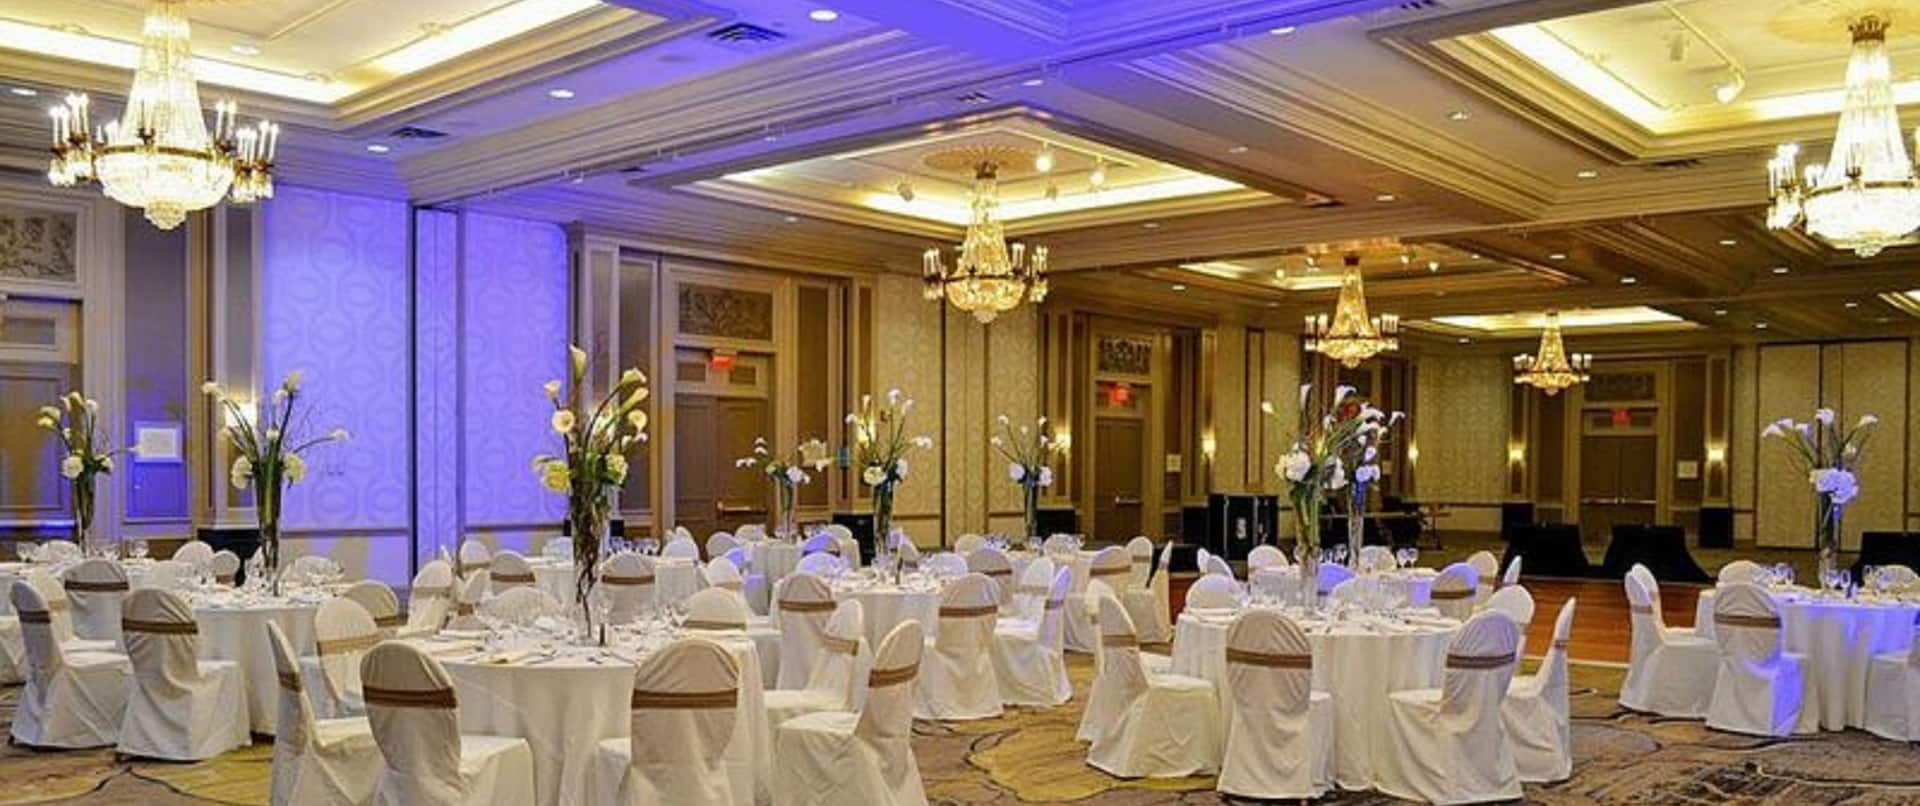 Grand Ballroom with Banquet Round Tables Setup